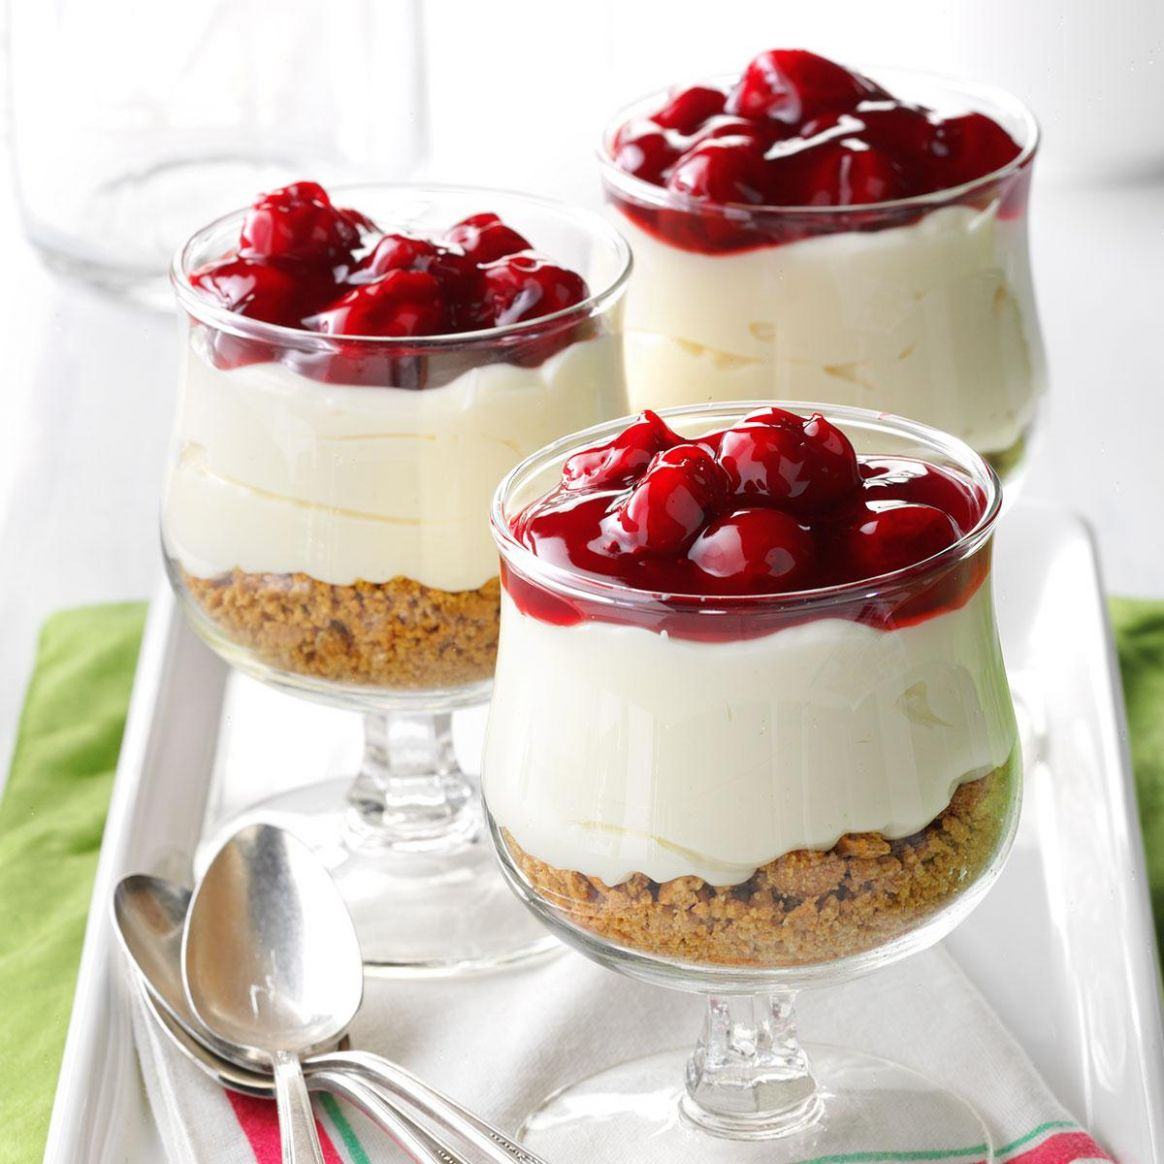 Cherry Cream Cheese Dessert - Recipes Of Dessert